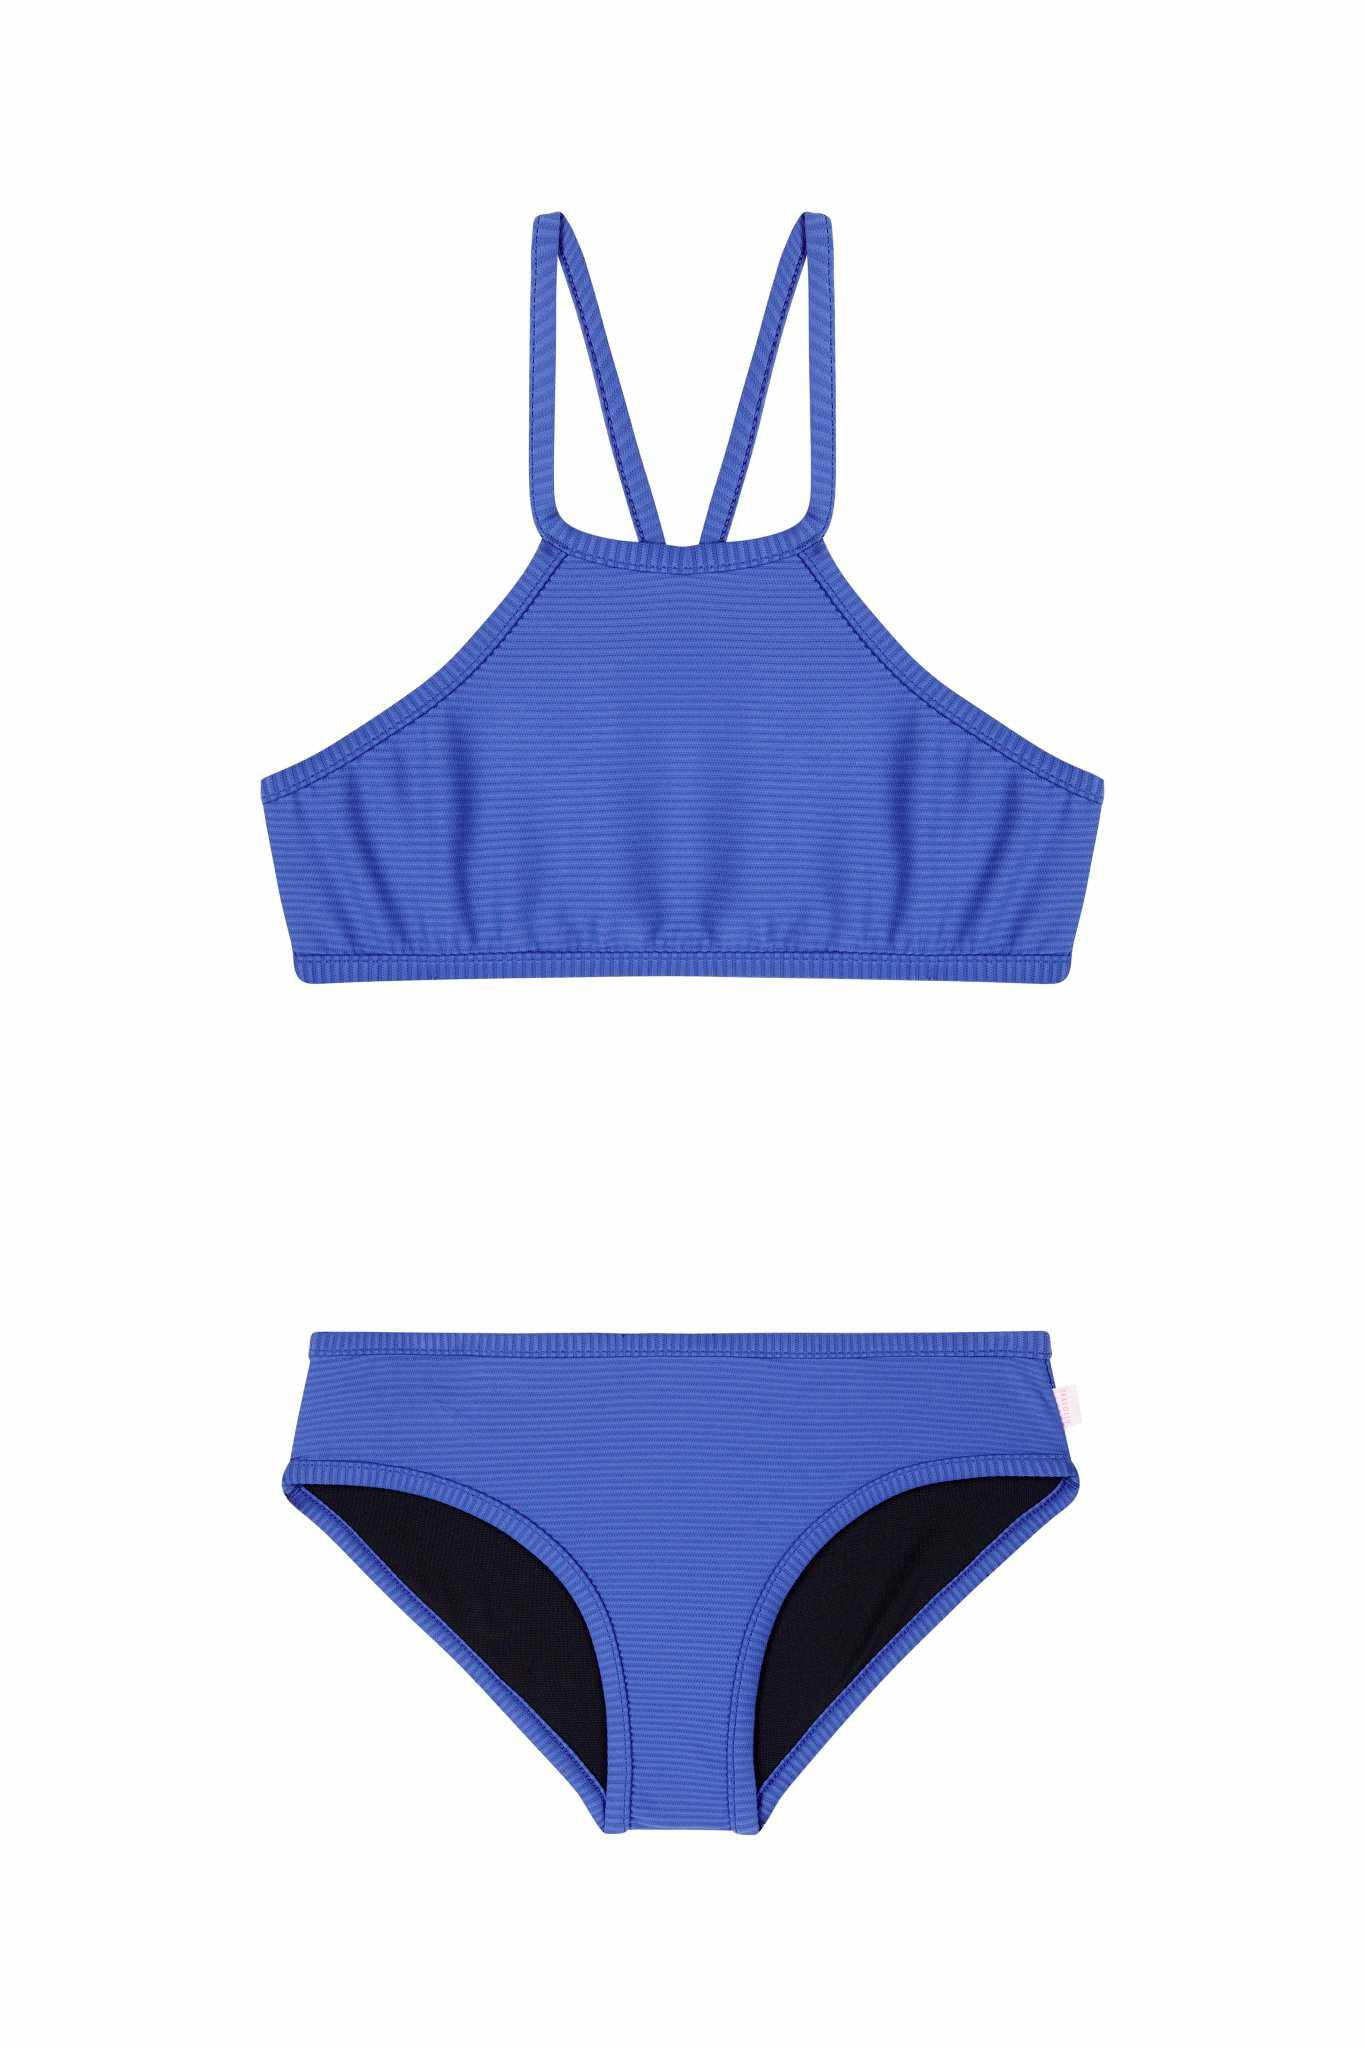 Seafolly Girls Apron Tankini - Summer Essentials